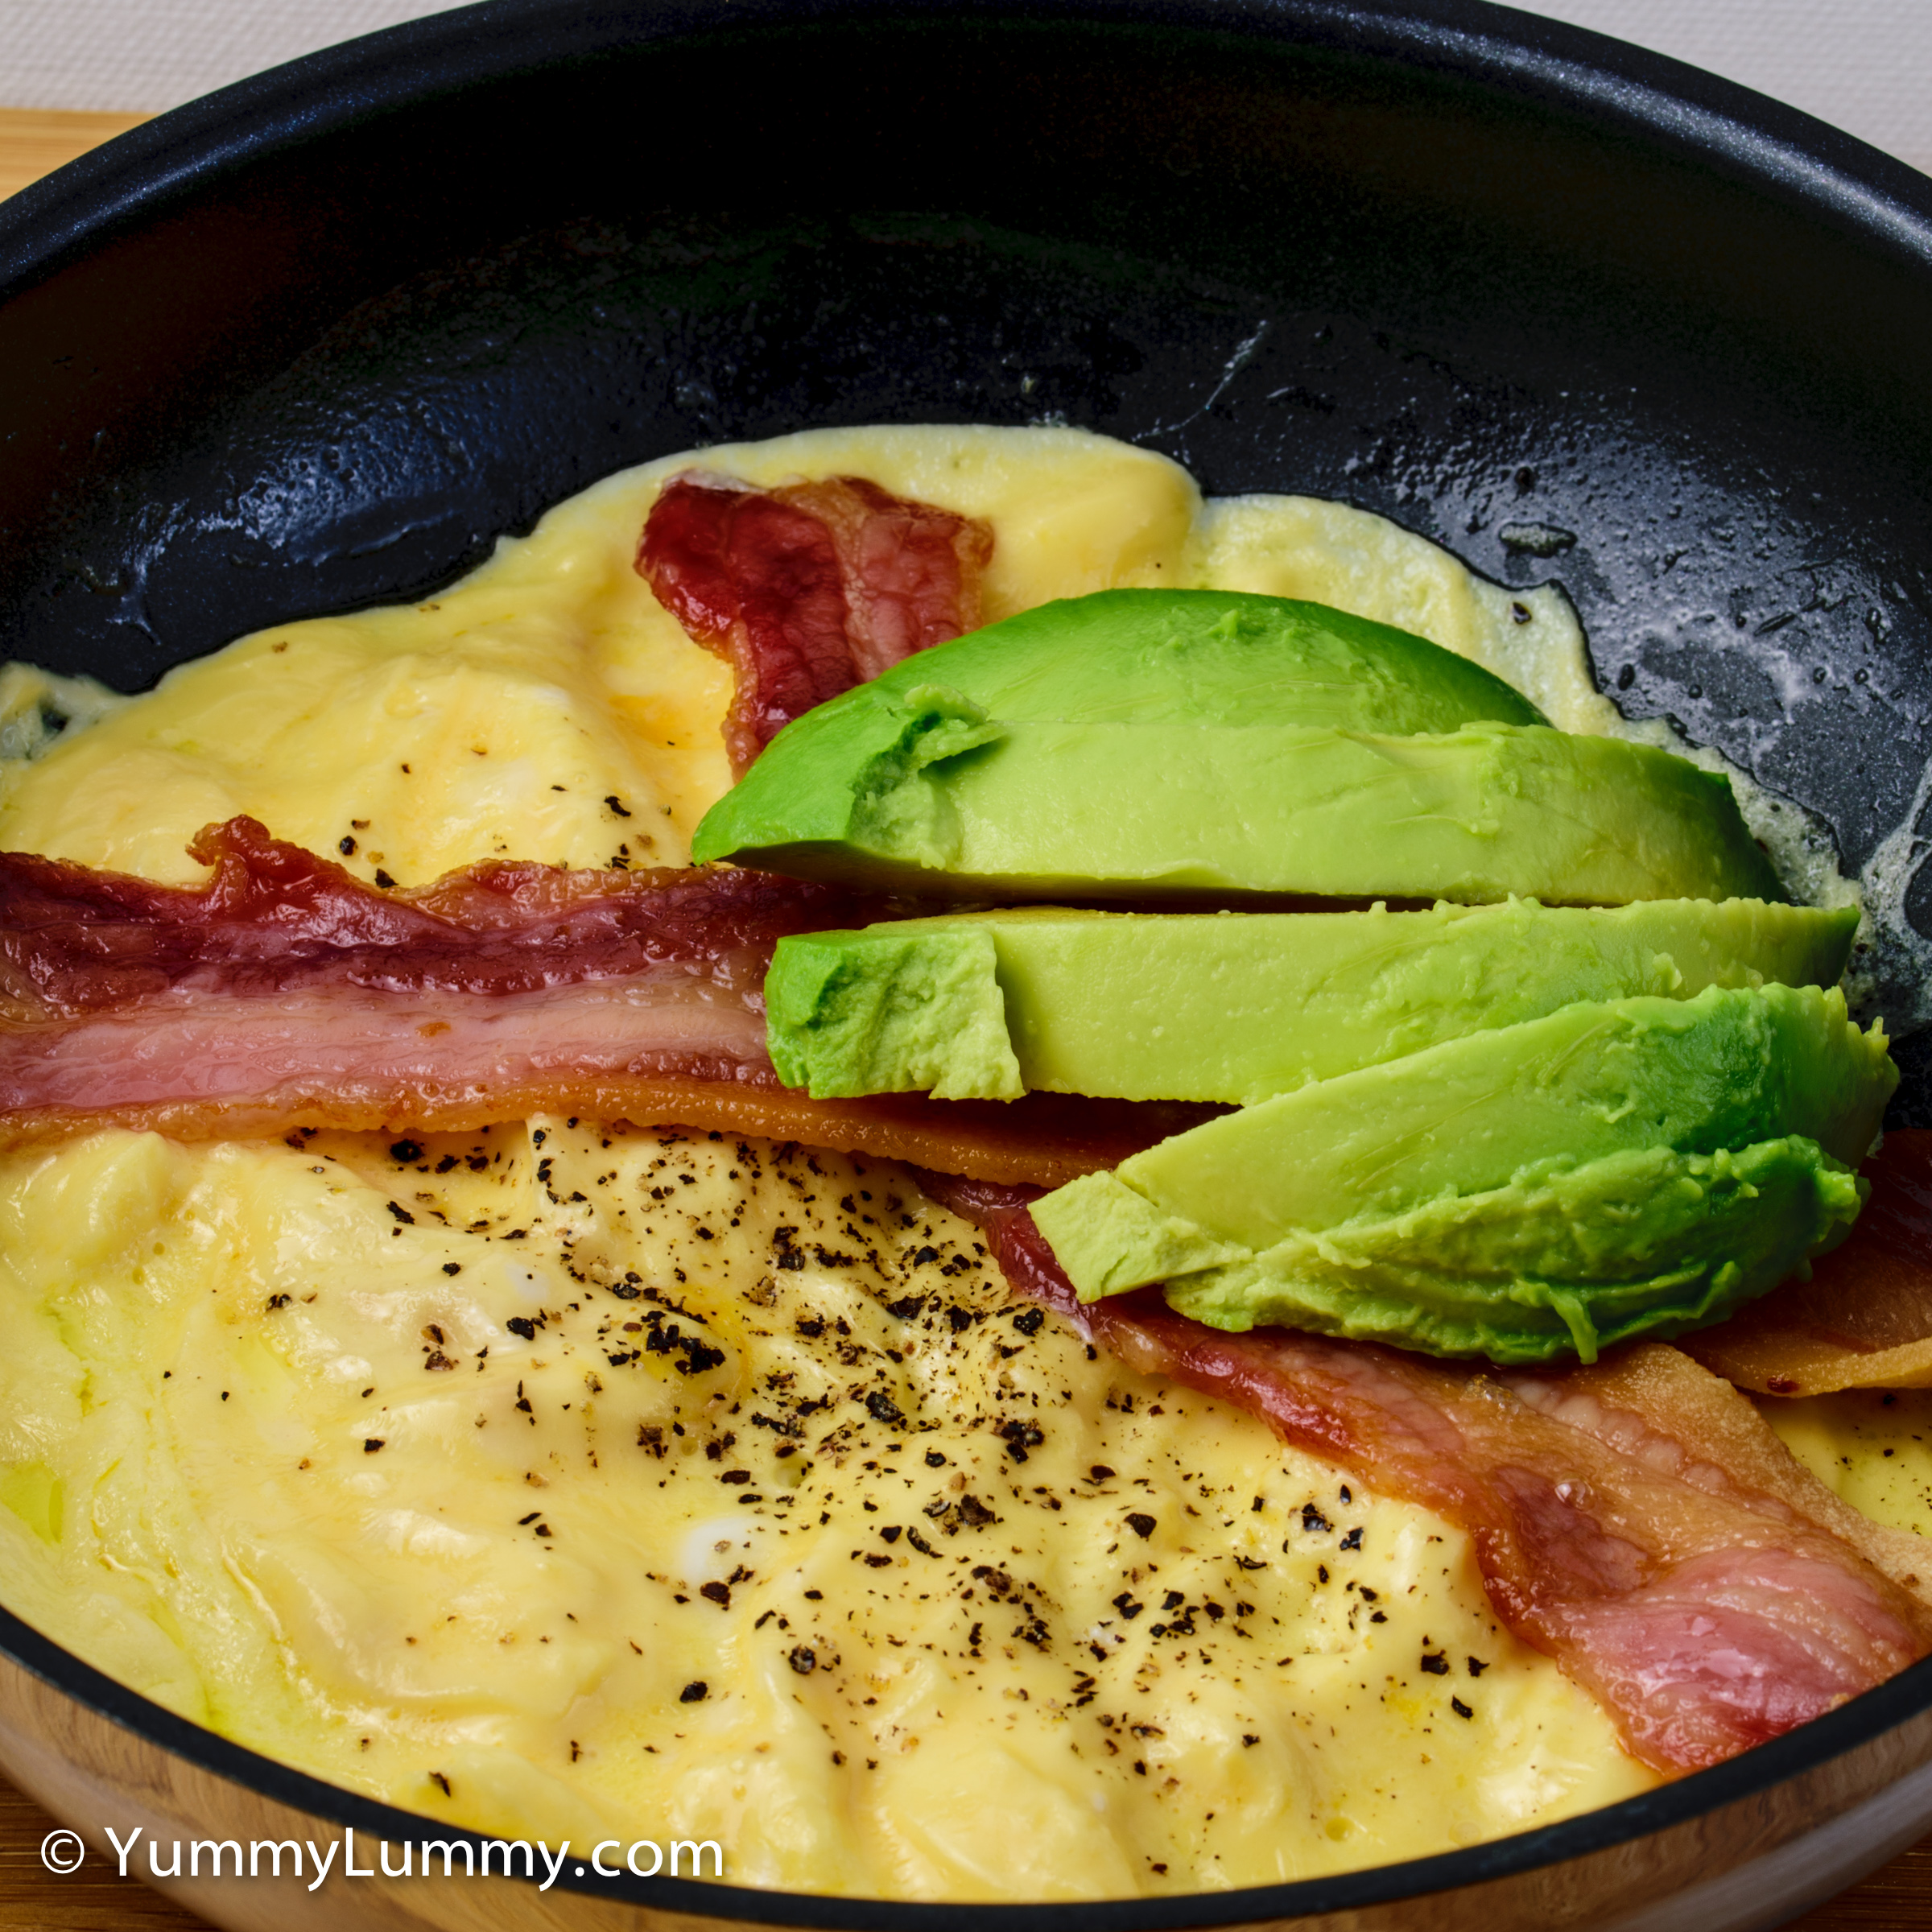 Happy hump day everyone. Pialligo bacon, scrambled eggs and avocado for breakfast.